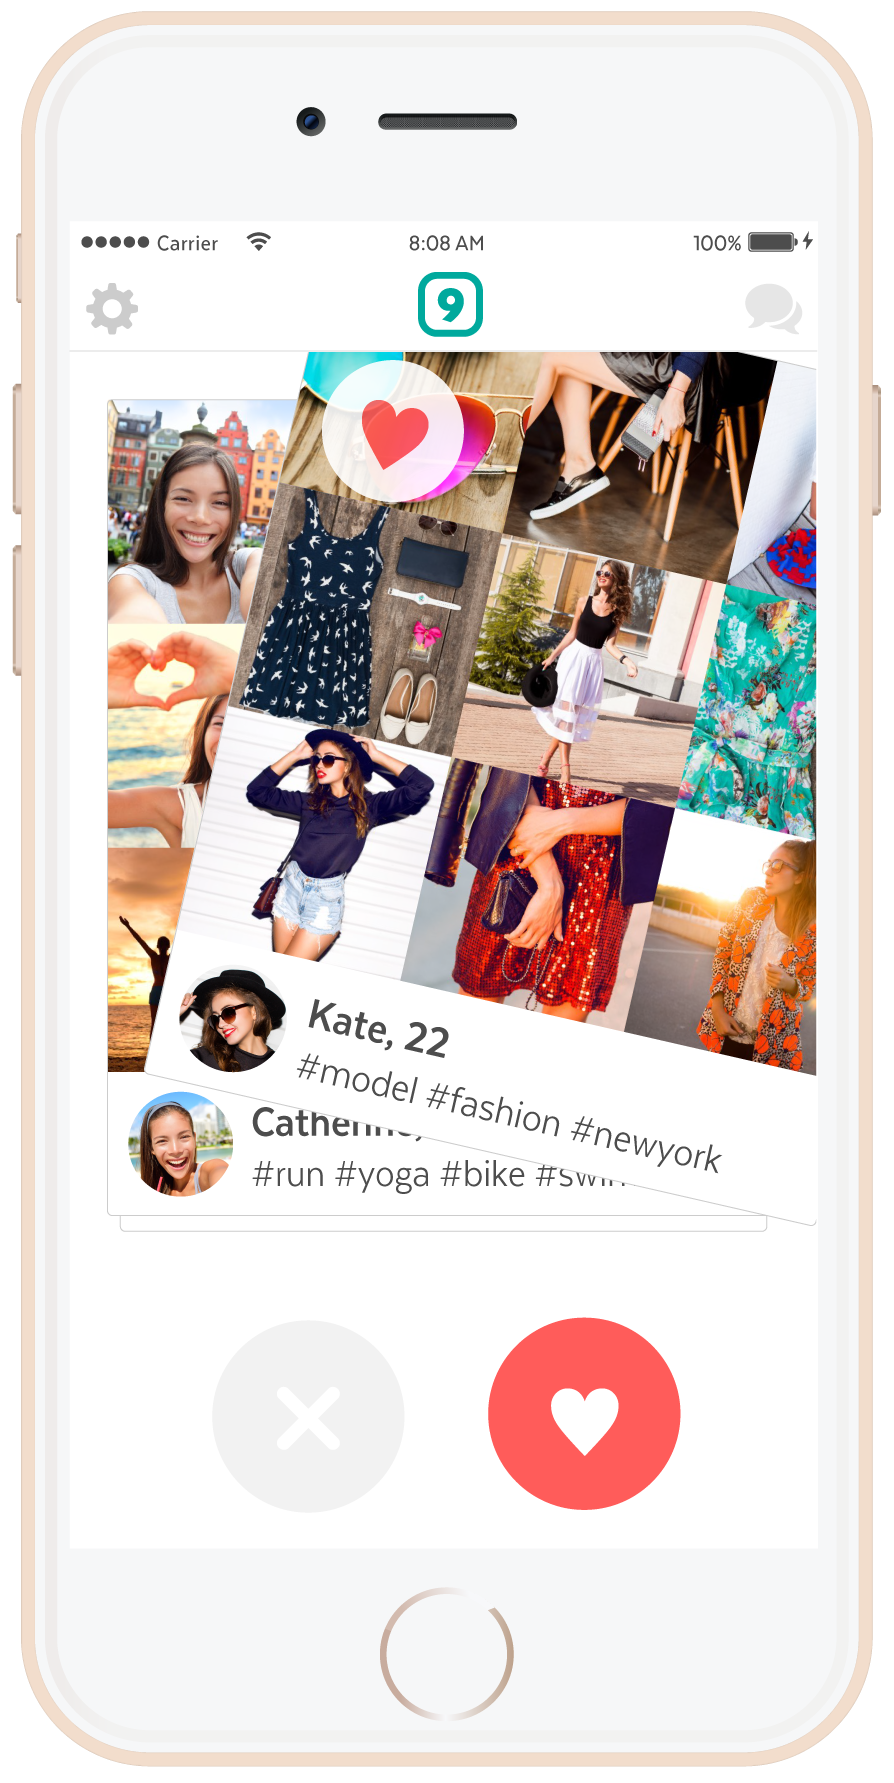 Dating app instagram clout